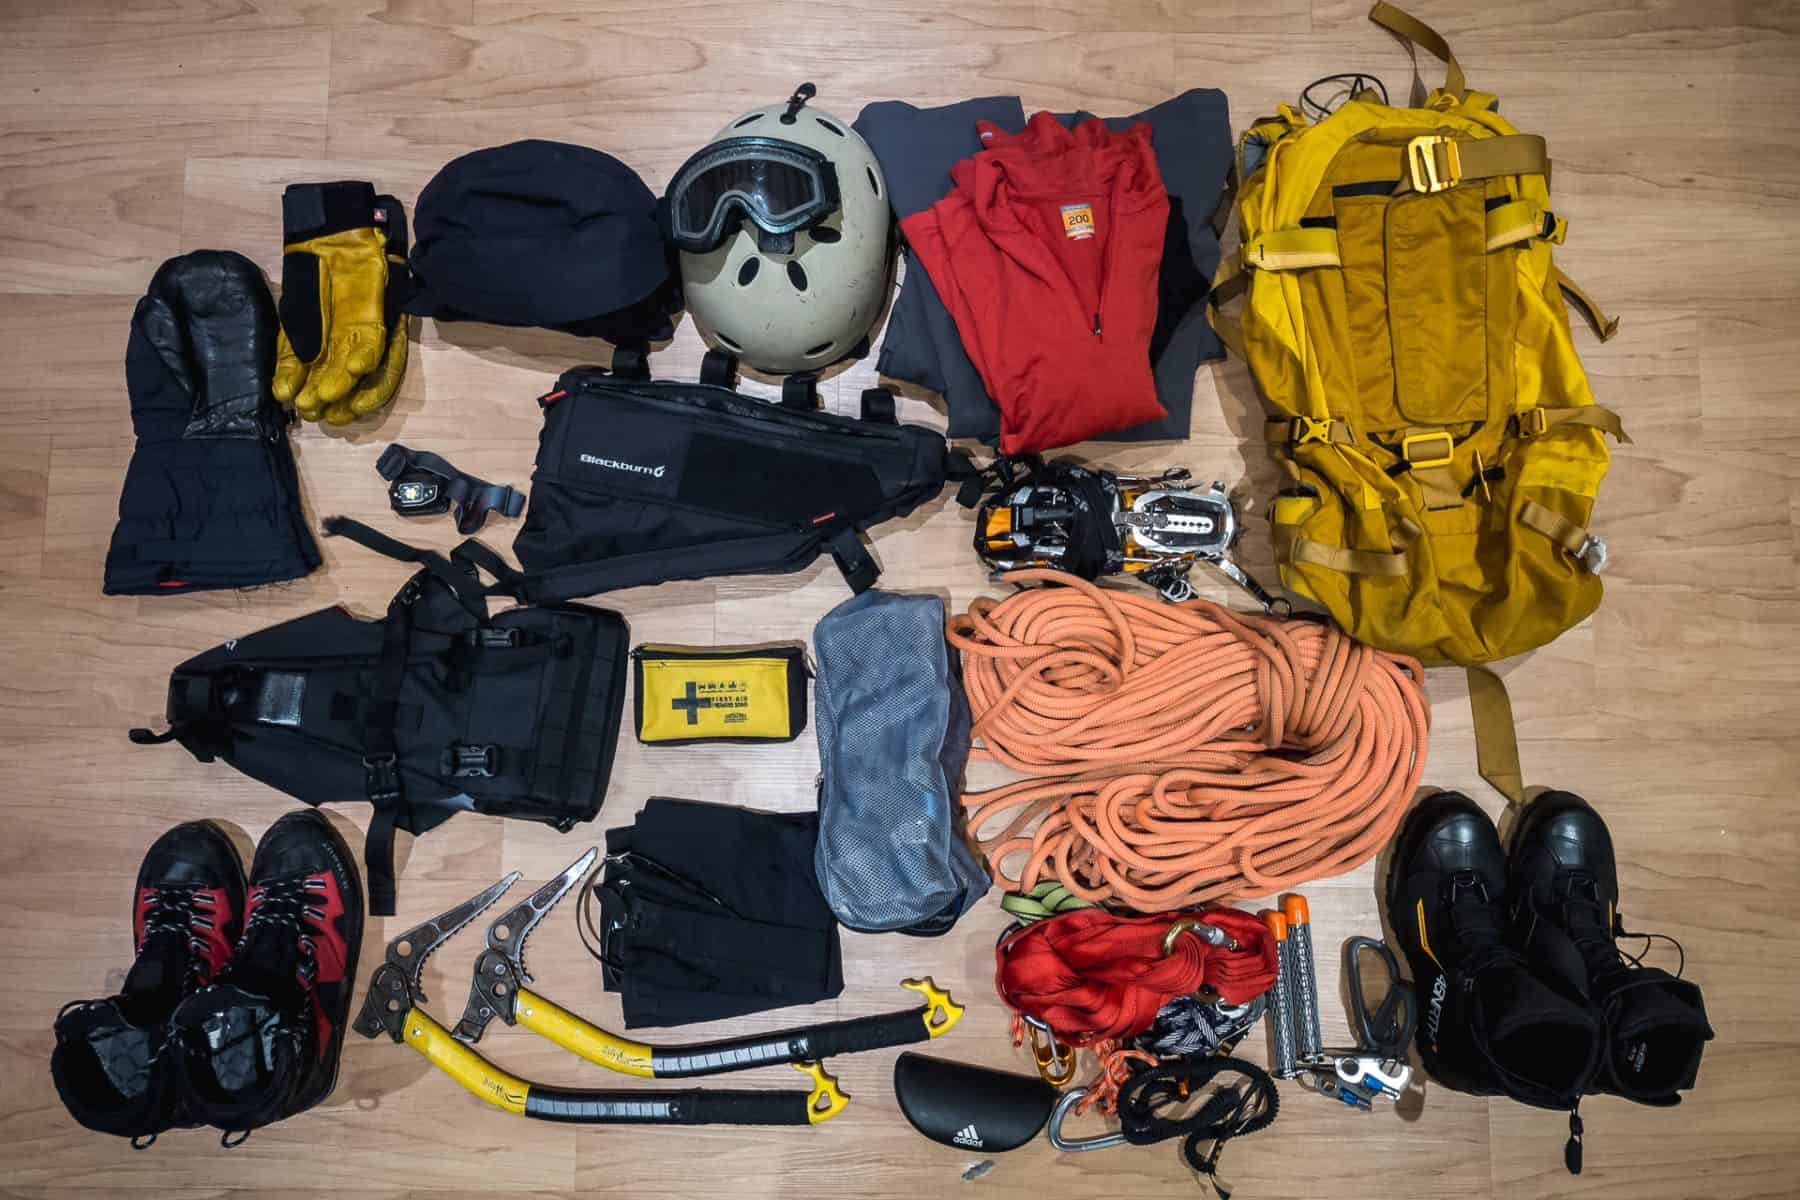 Top view of gear for ice climbing and fatbiking trip